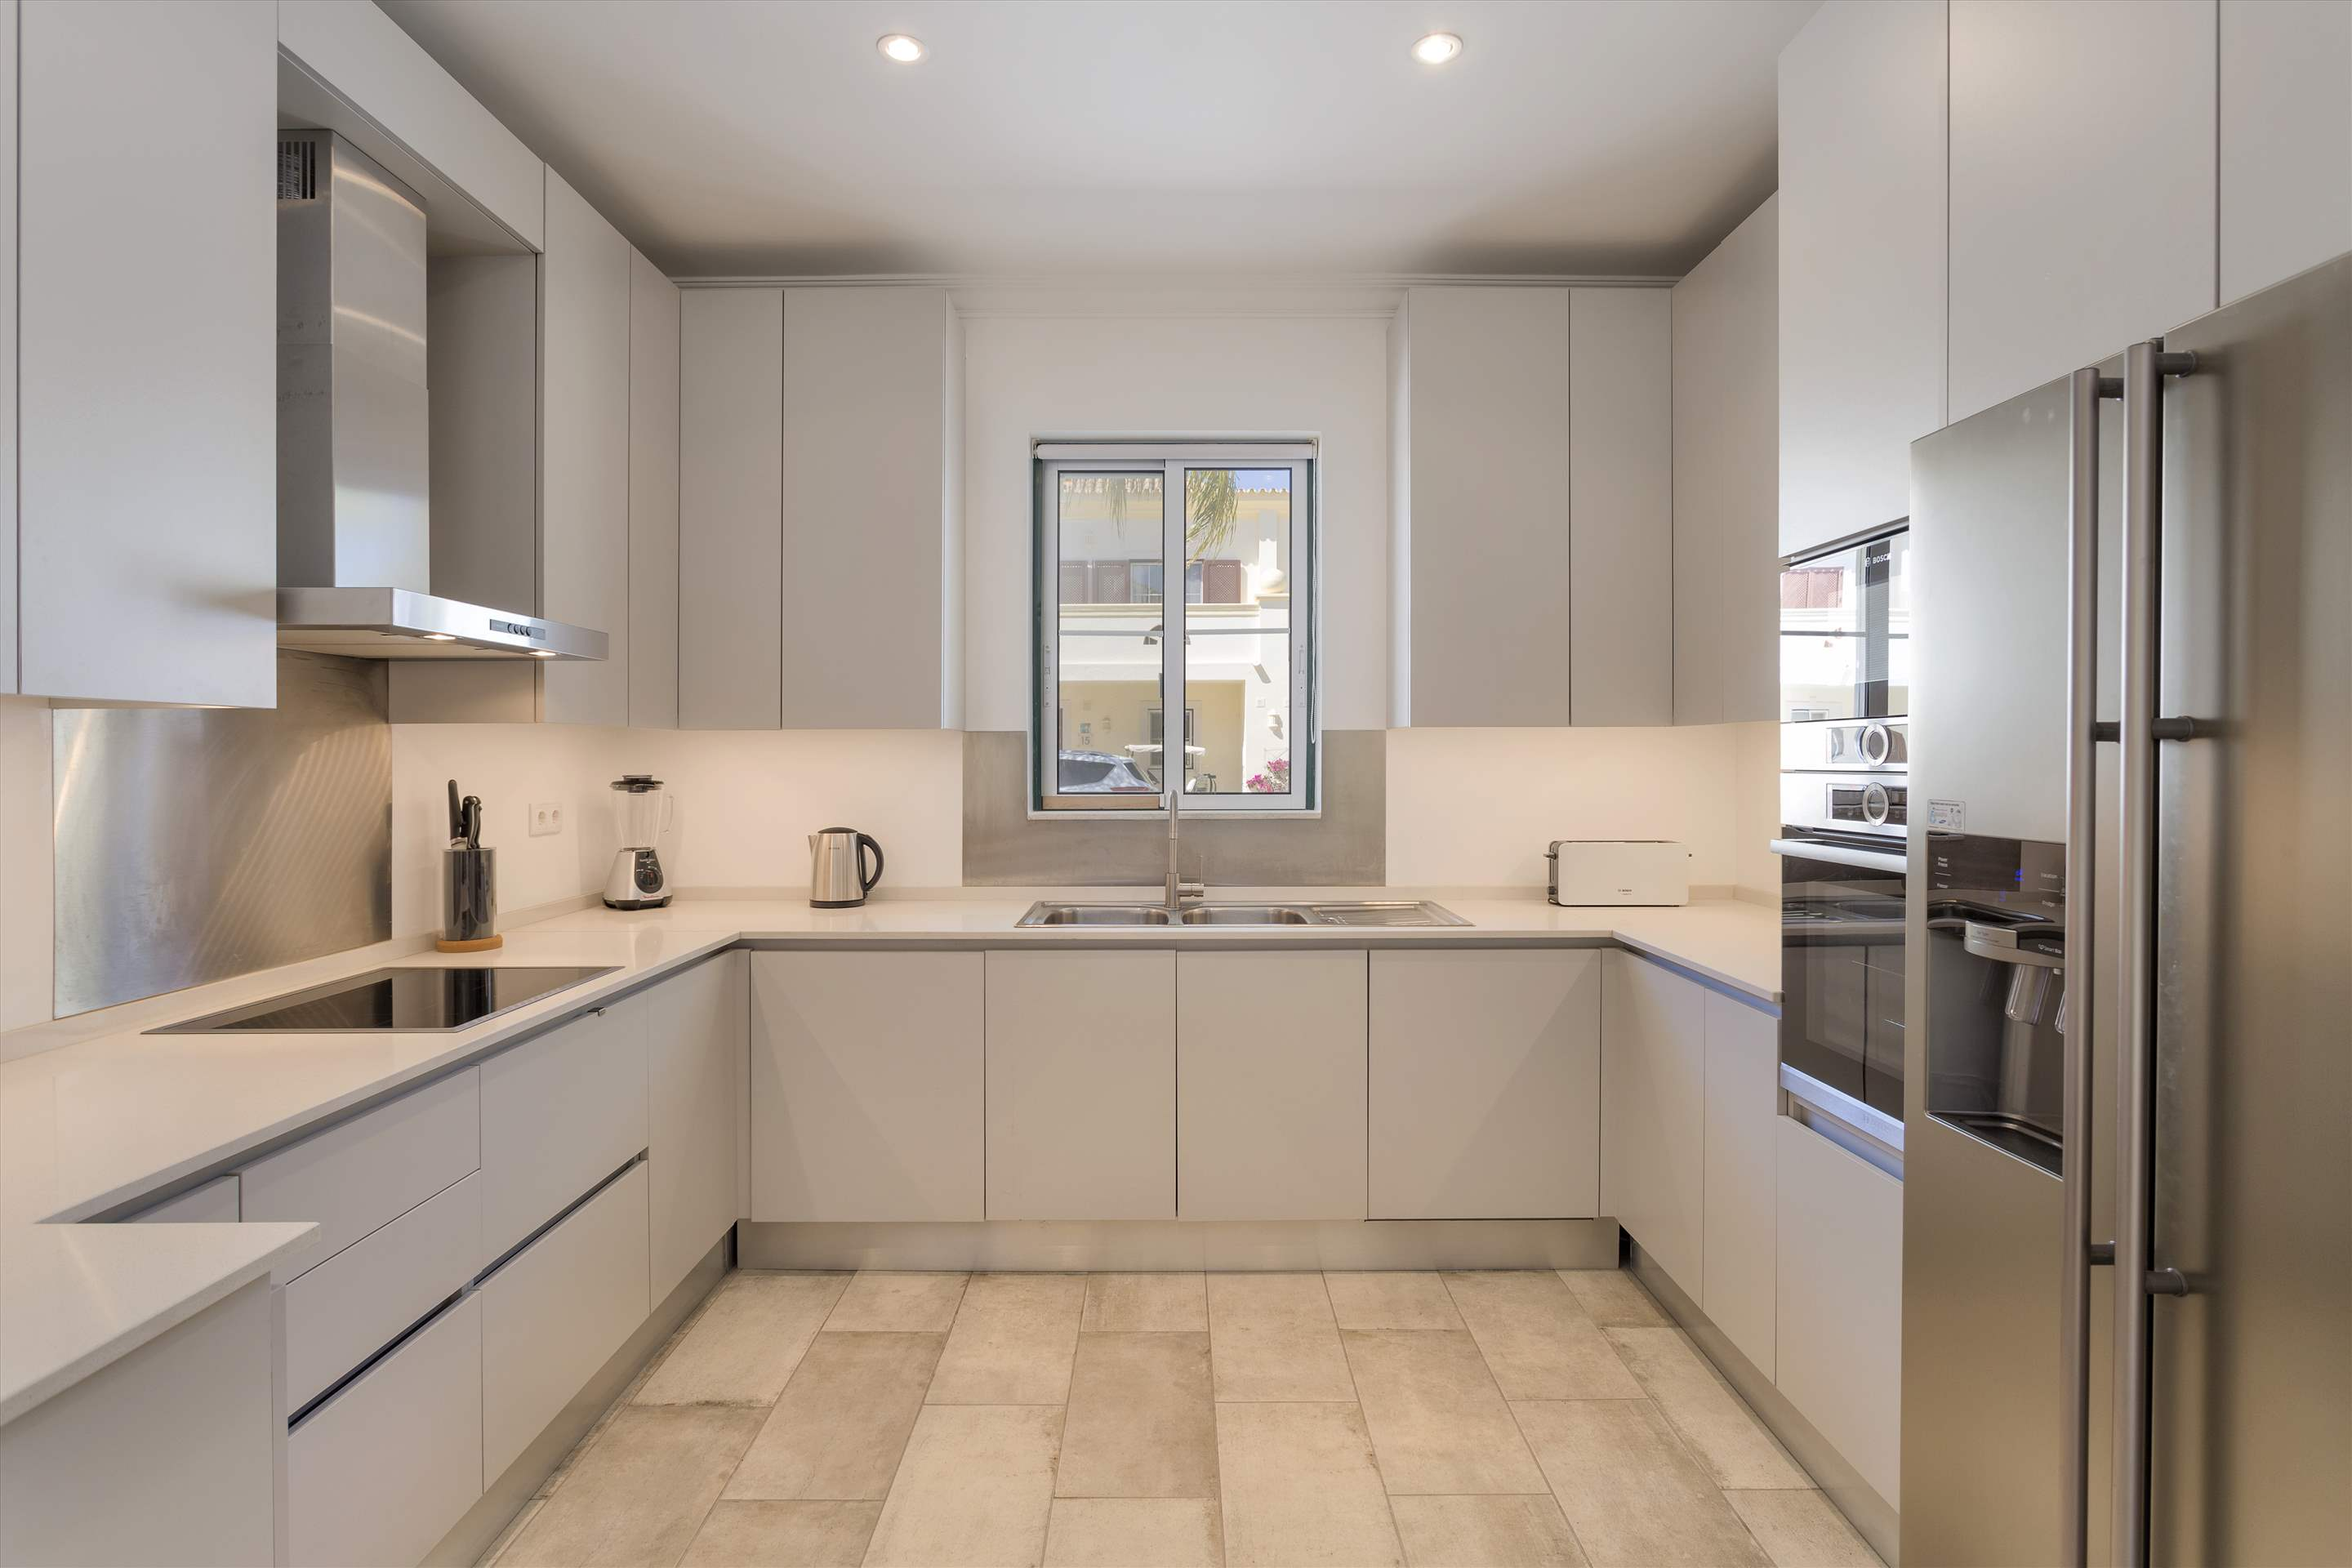 Townhouse Jessica, 3 bedroom villa in Quinta do Lago, Algarve Photo #7